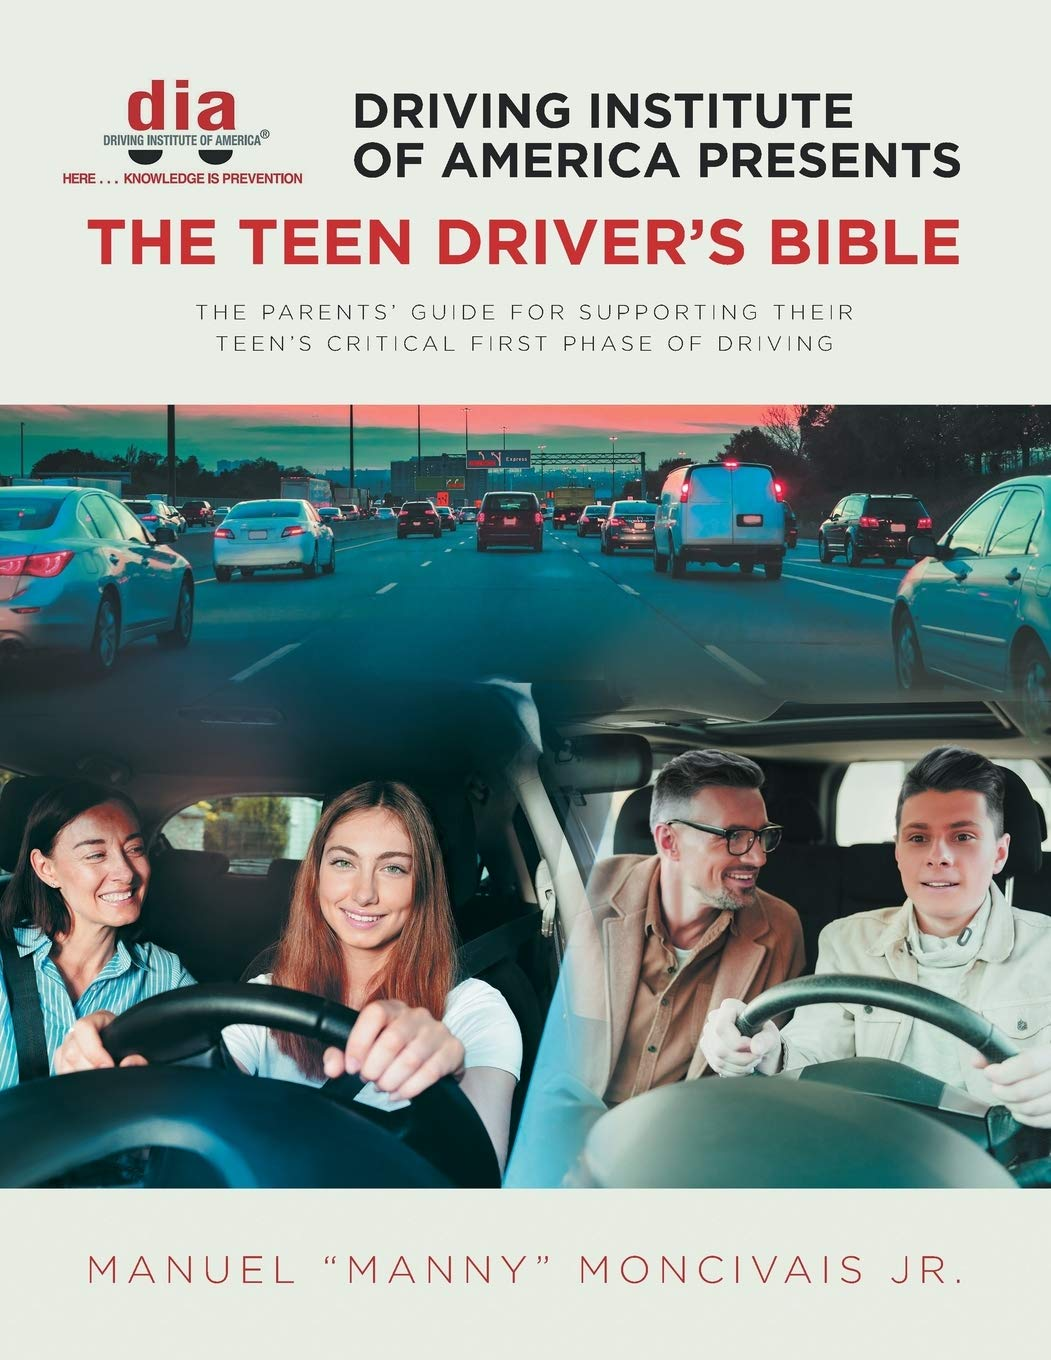 Driving Institute of America presents The Teen Driver's Bible: The Parents' Guide for Supporting Their Teen's Critical First Phase of Driving by Christian Faith Publishing, Inc